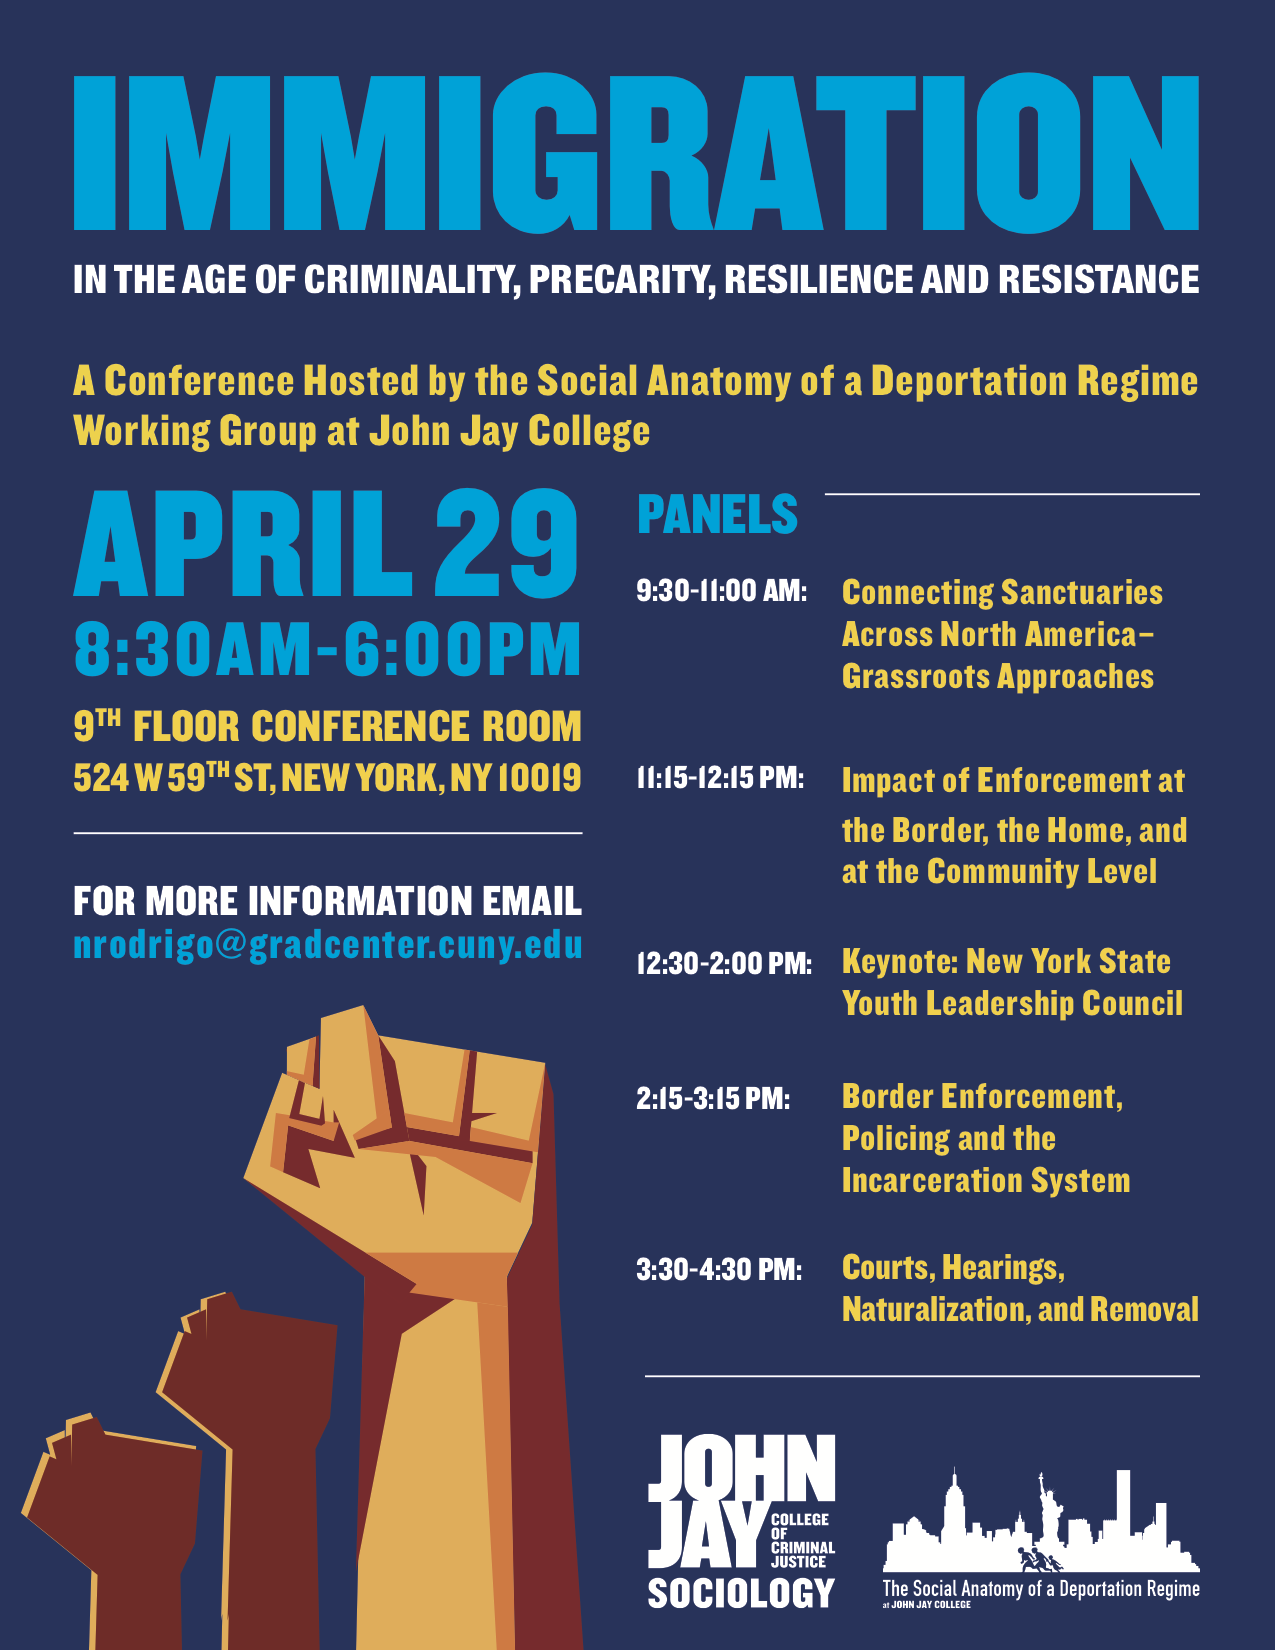 immigration-in-the-age-of-criminality-precarity-resilience-resistance-conference-john-jay-college-st-francis-de-sales-church-new-york-city.png